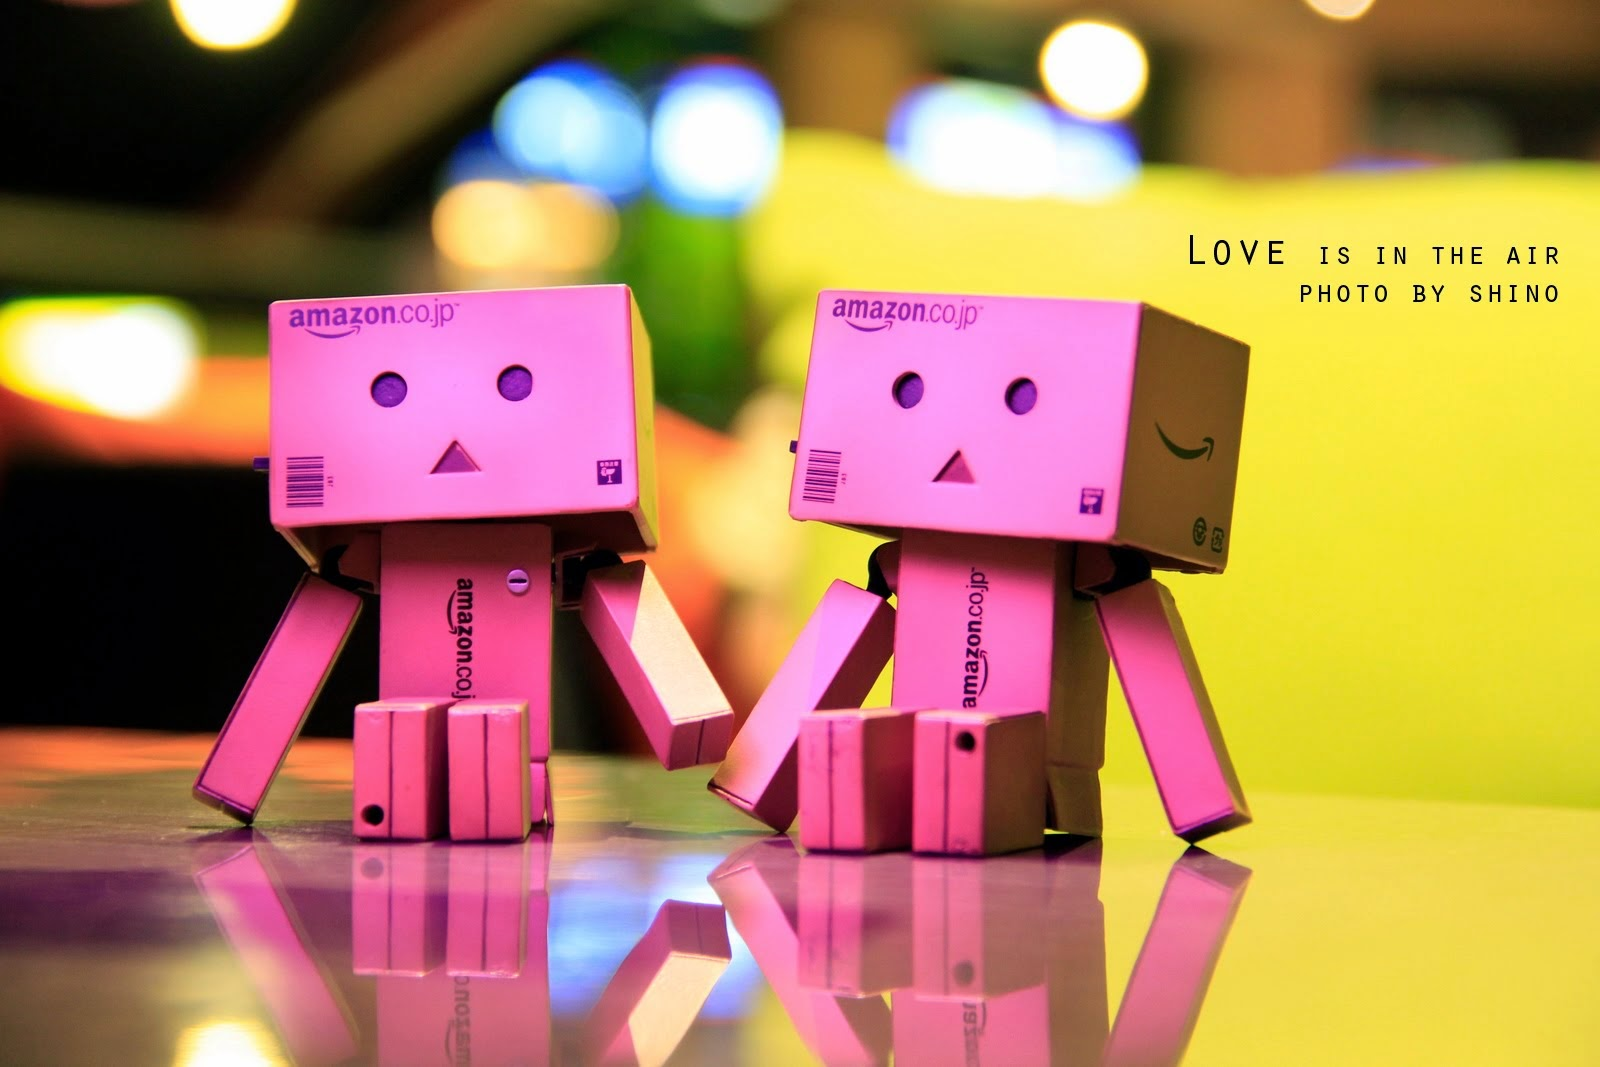 Emo Girl Wallpaper Free Download Gambar Boneka Danbo Hd Download Gratis